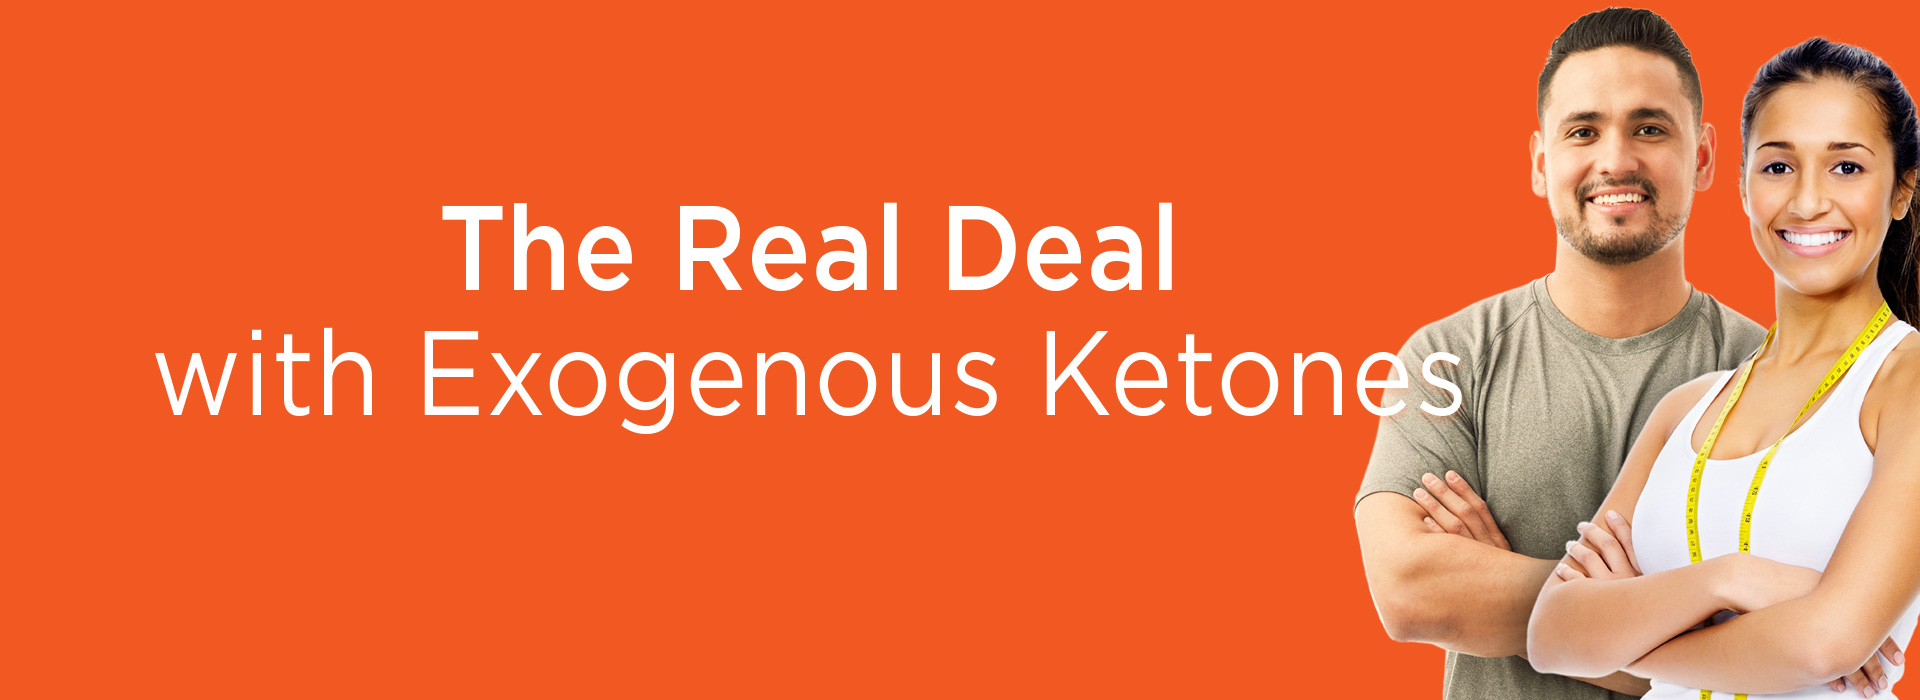 New Image International: Exogenous Ketos